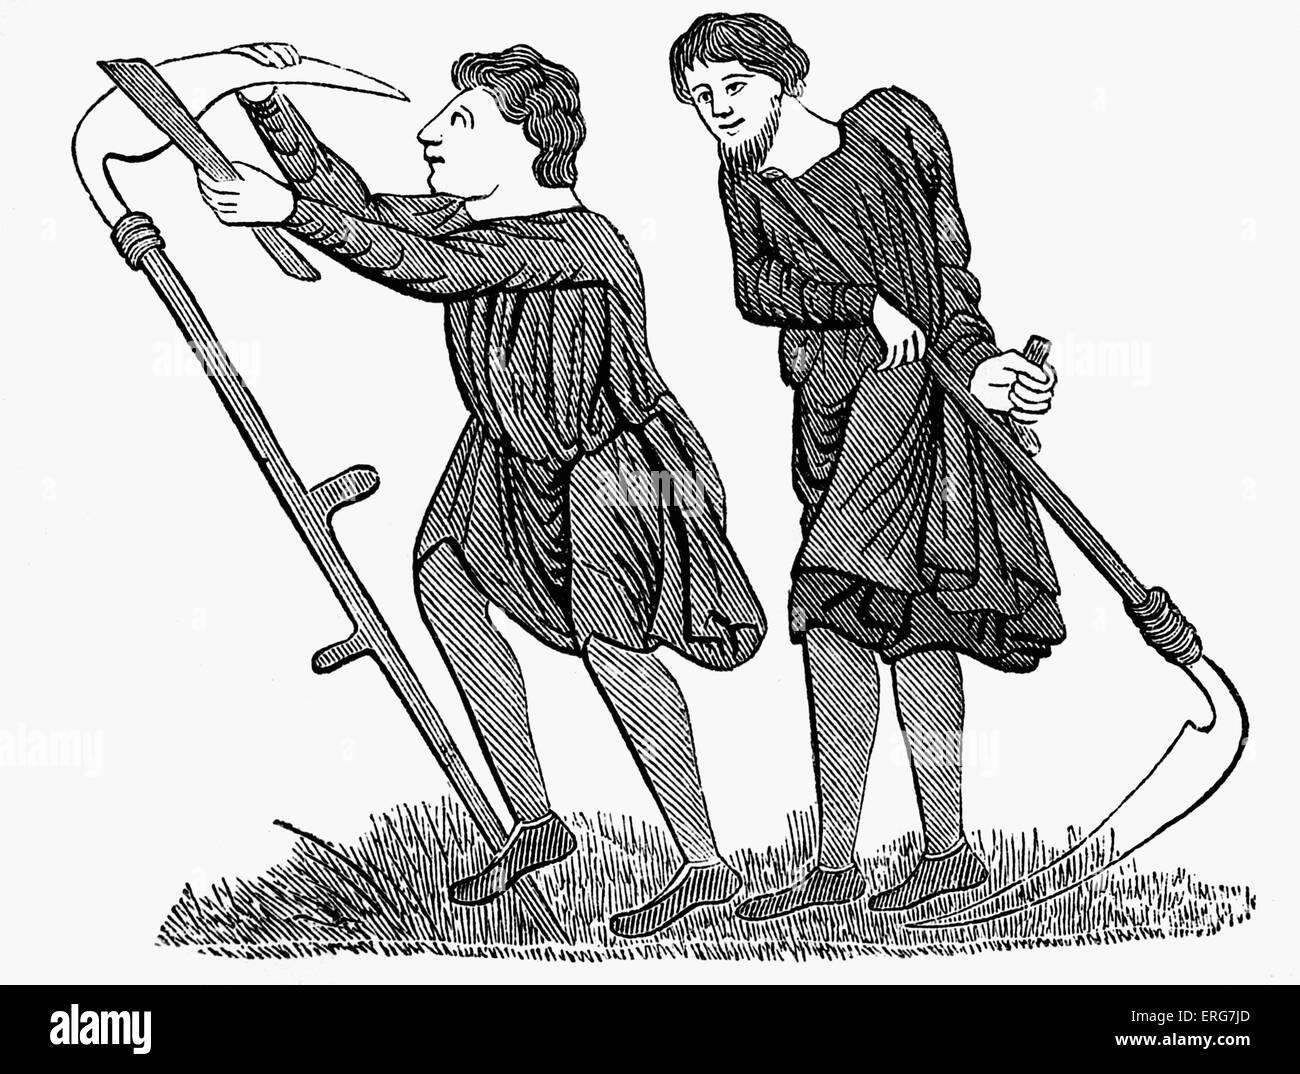 Labouring colons, 12th century - Stock Image